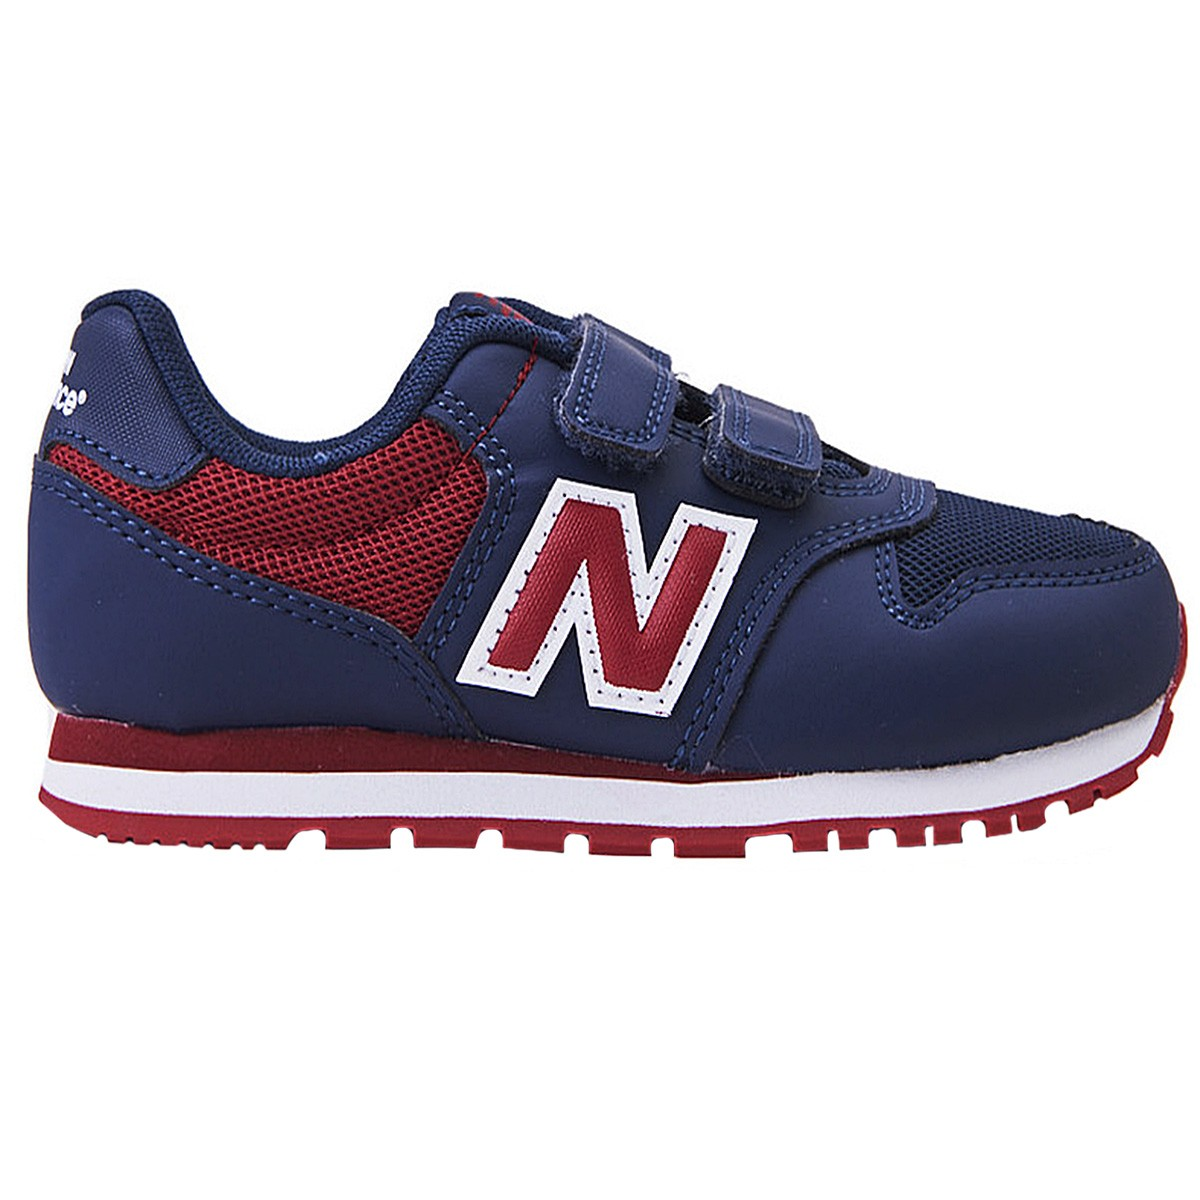 sneakers new balance 500 hook and loop chaussures baby. Black Bedroom Furniture Sets. Home Design Ideas